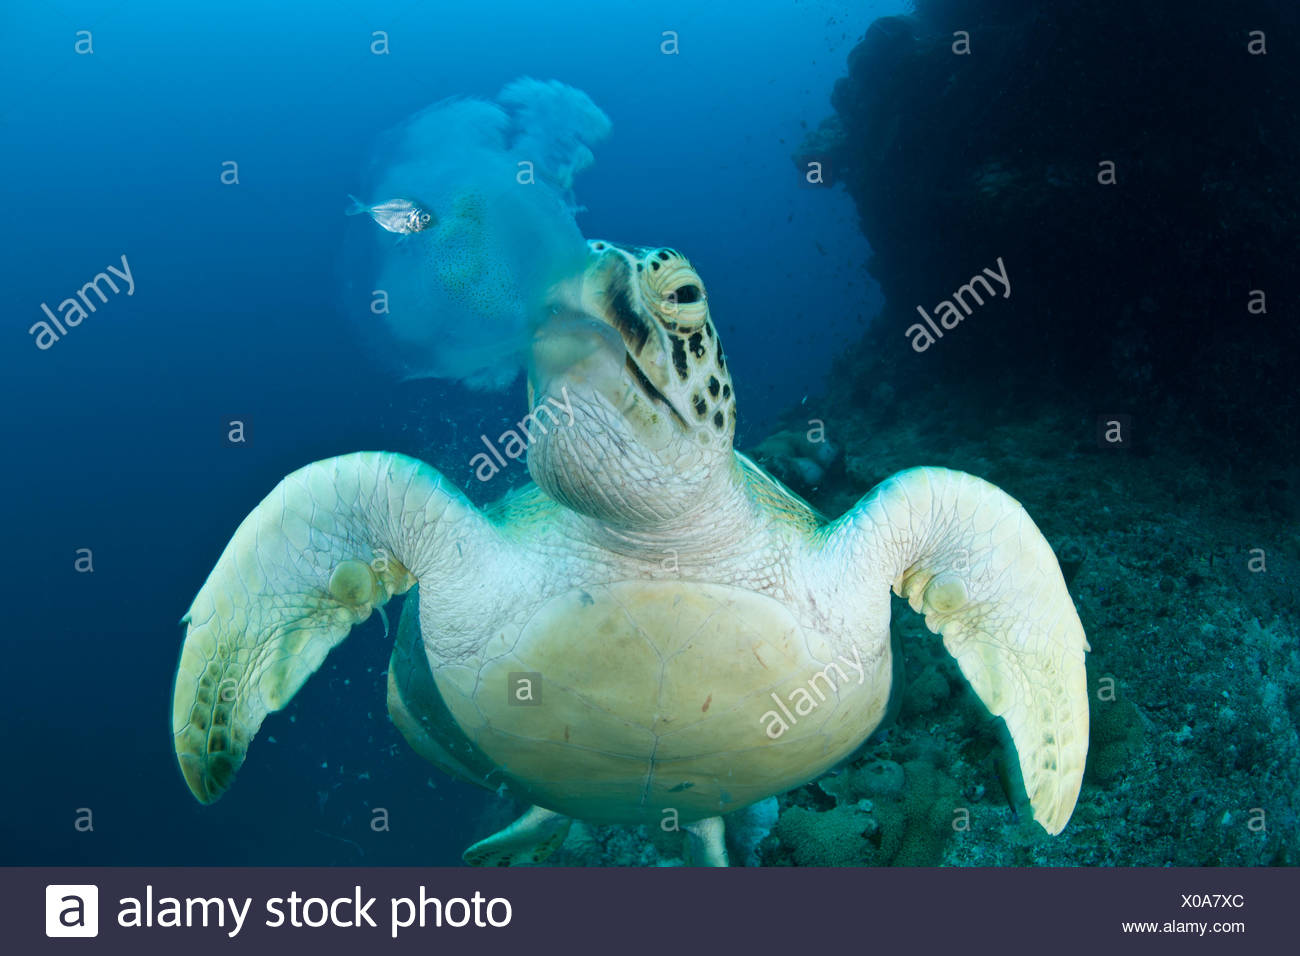 Green turtle (Chelonia mydas) feeding on jellyfish. Juvenile mackerel still hides beside the jellyfish about to lose its home. - Stock Image